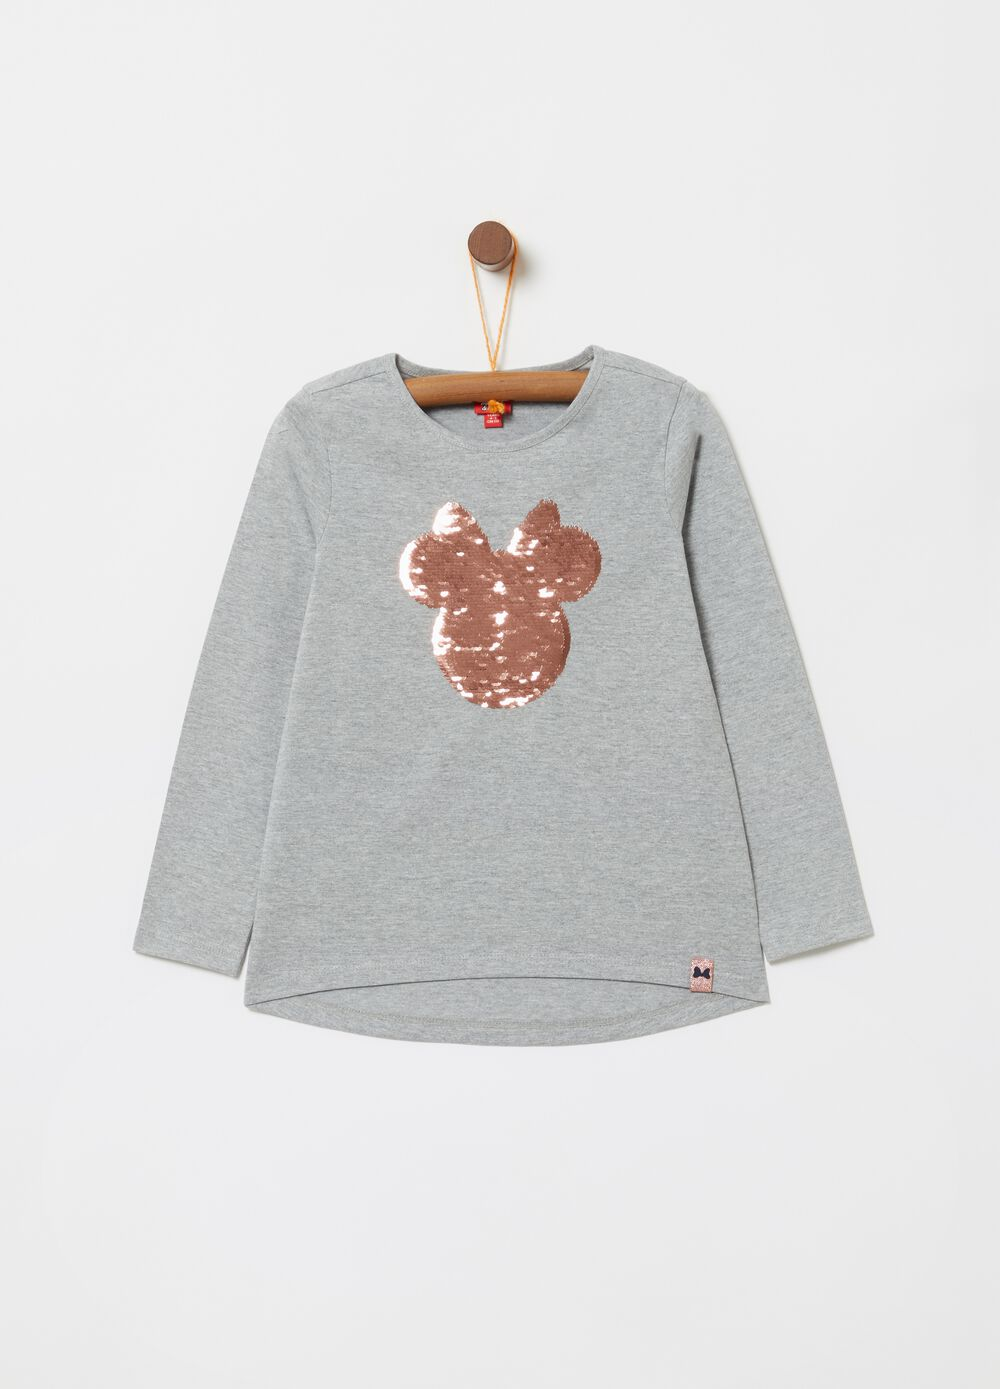 Mélange T-shirt with Disney Minnie Mouse embroidery